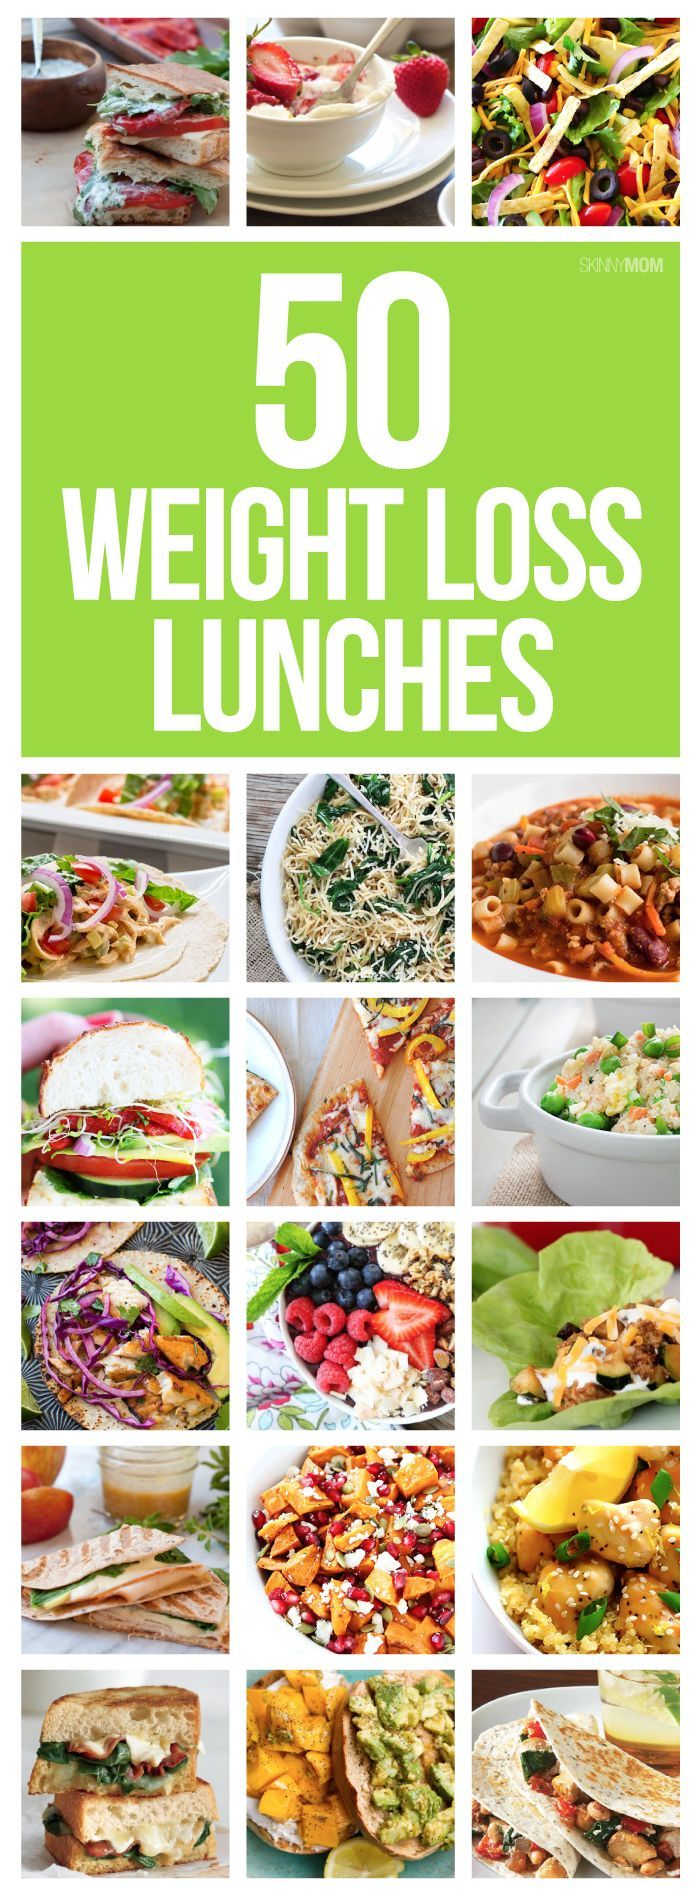 50 Healthy Ways to Lose Weight 50 Healthy Ways to Lose Weight new pictures